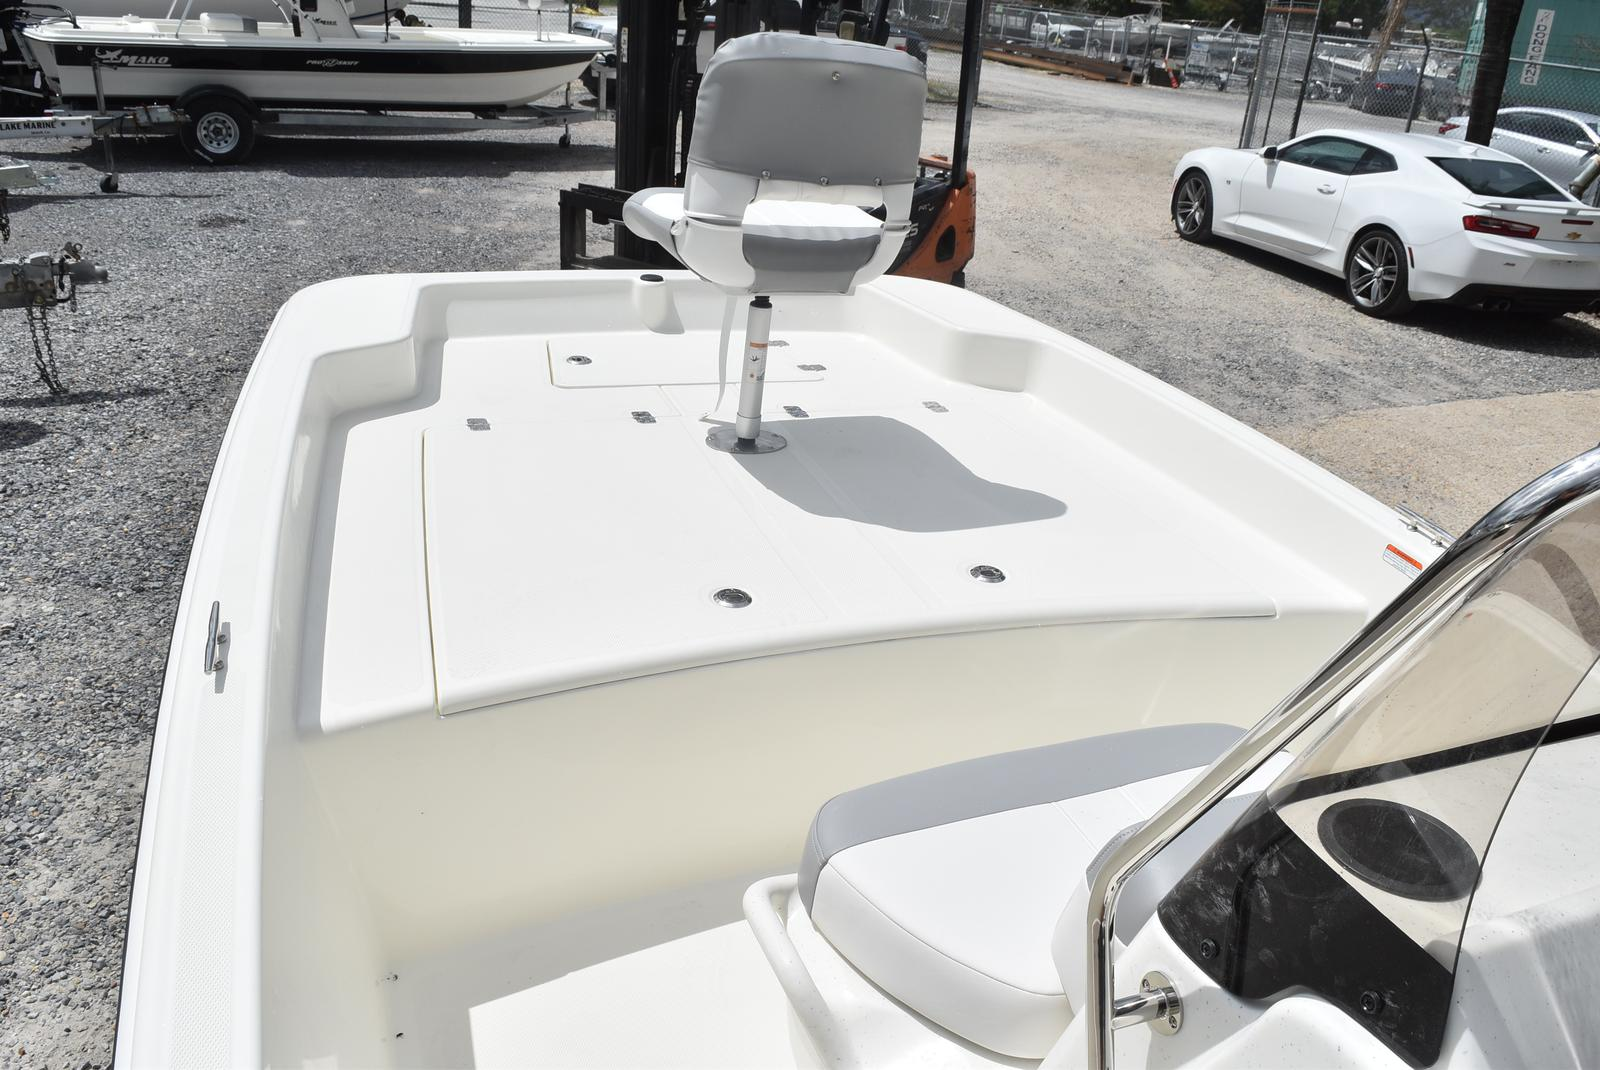 2020 Mako boat for sale, model of the boat is Pro Skiff 17, 75 ELPT & Image # 419 of 702